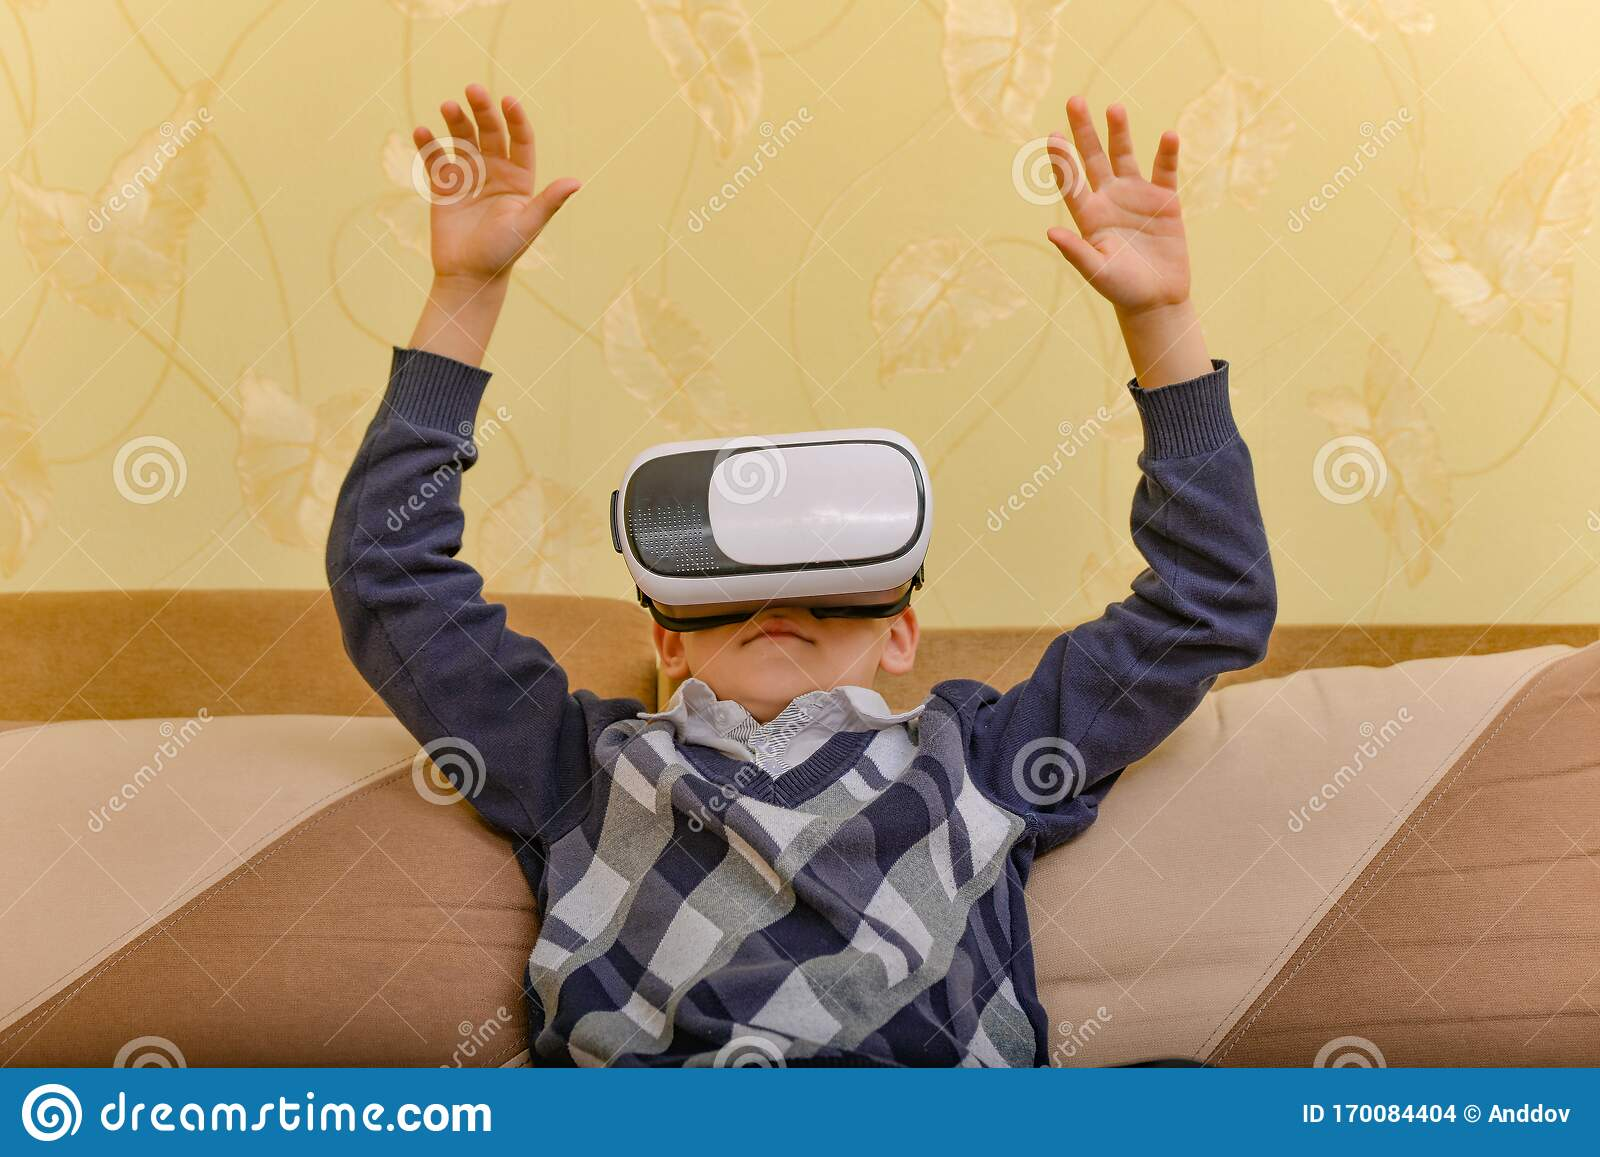 """A young boy does """"the Wave"""" as a digital spectator to a baseball game, from his own couch at home. (ANDRIY DOVZHYKOV / DREAMSTIME.COM)"""